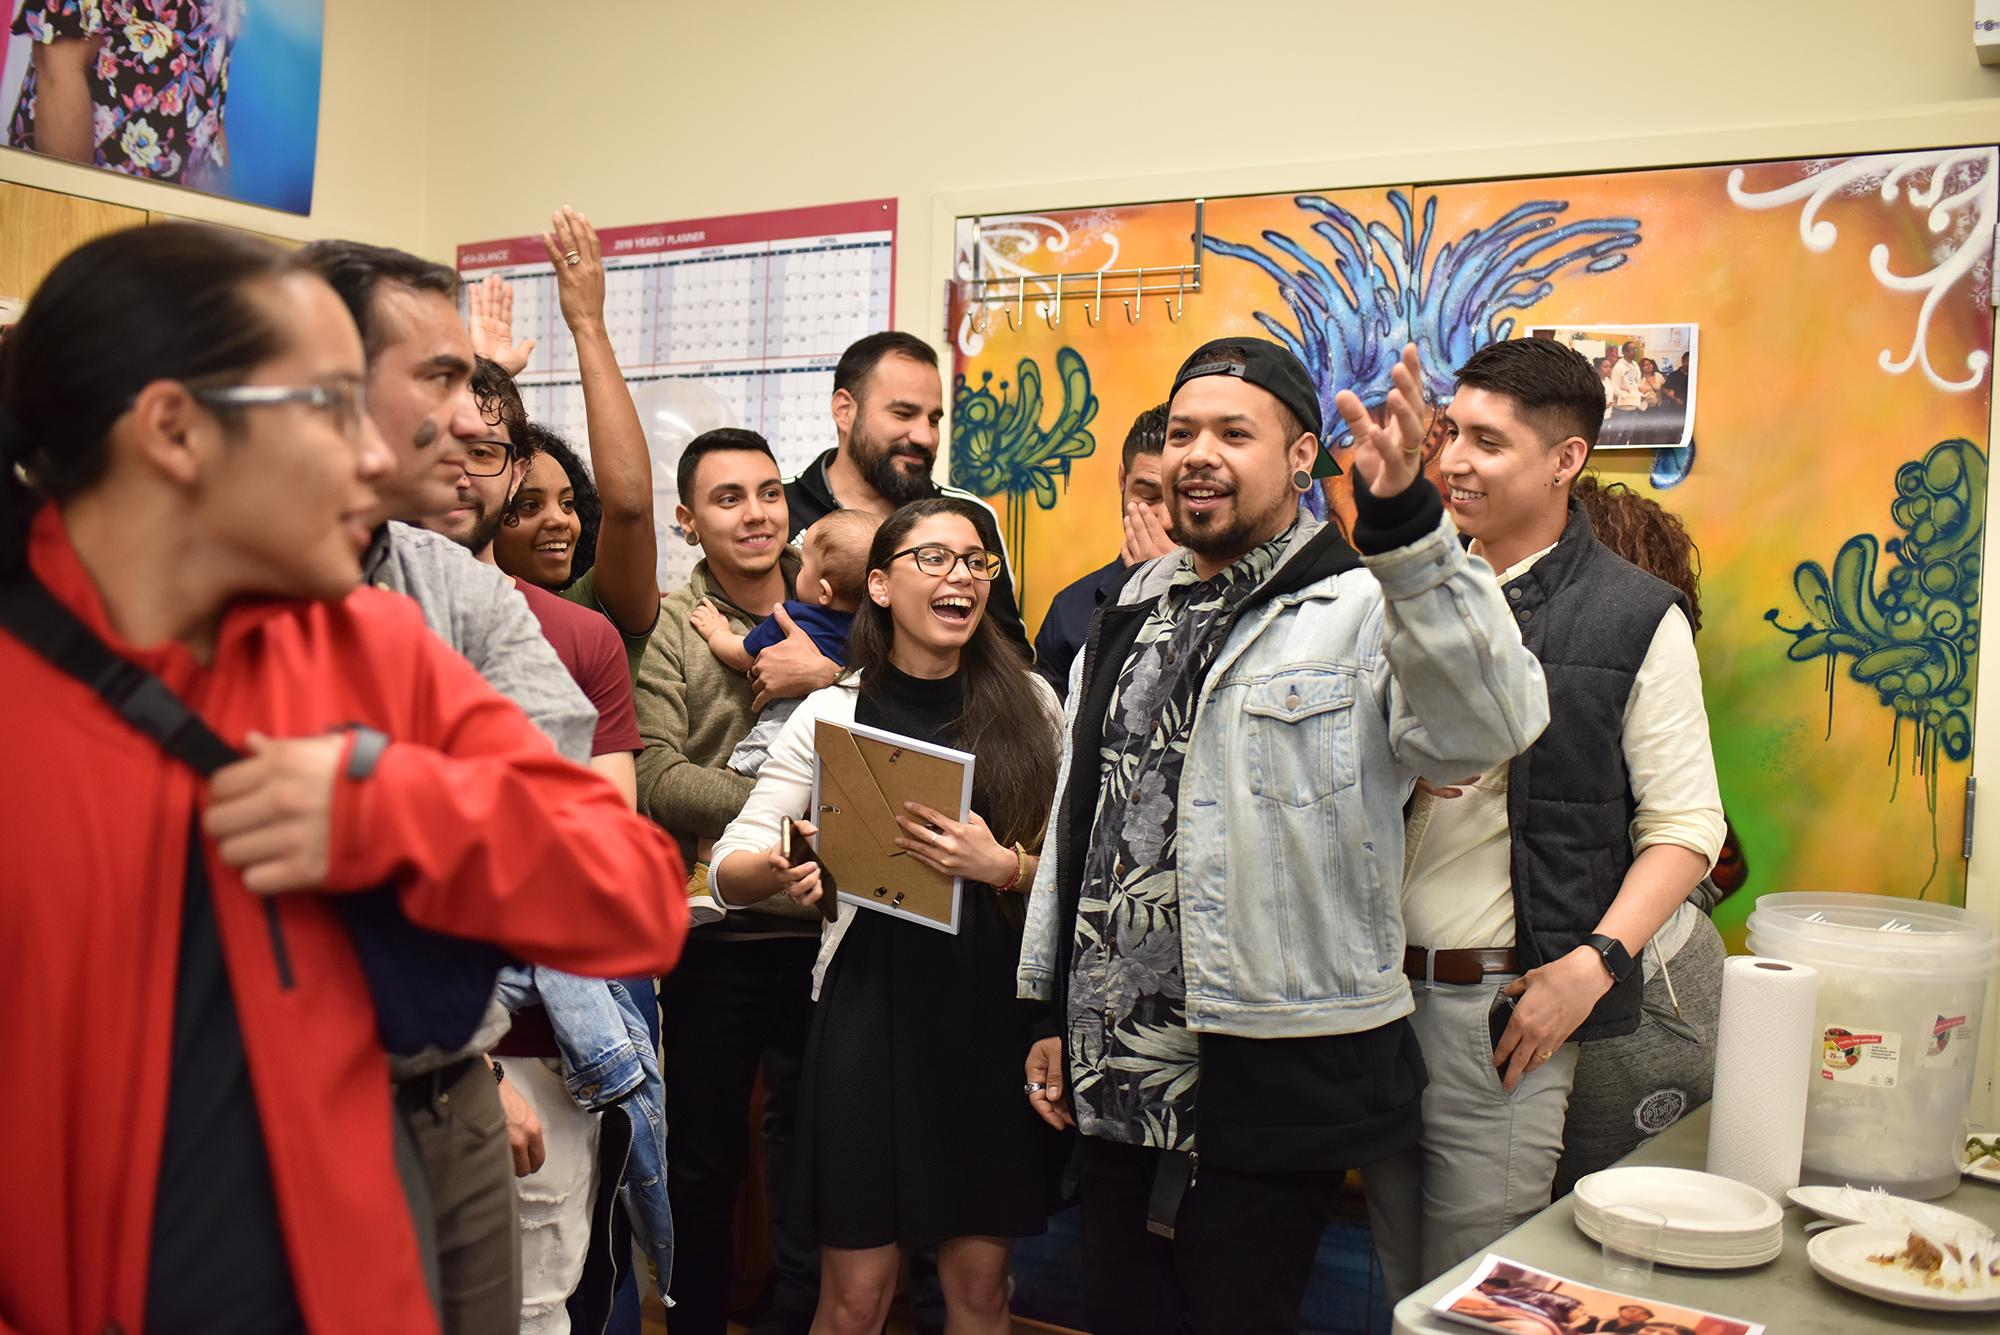 Oscar Chico and other Daca activists are celebrating the New York DREAM found Commission senate bill #1250 created in April 12/2019 to give financial opportunity programs for Daca students and graduates in New York State on April 24, 2019, Jackson Heights, Queens.